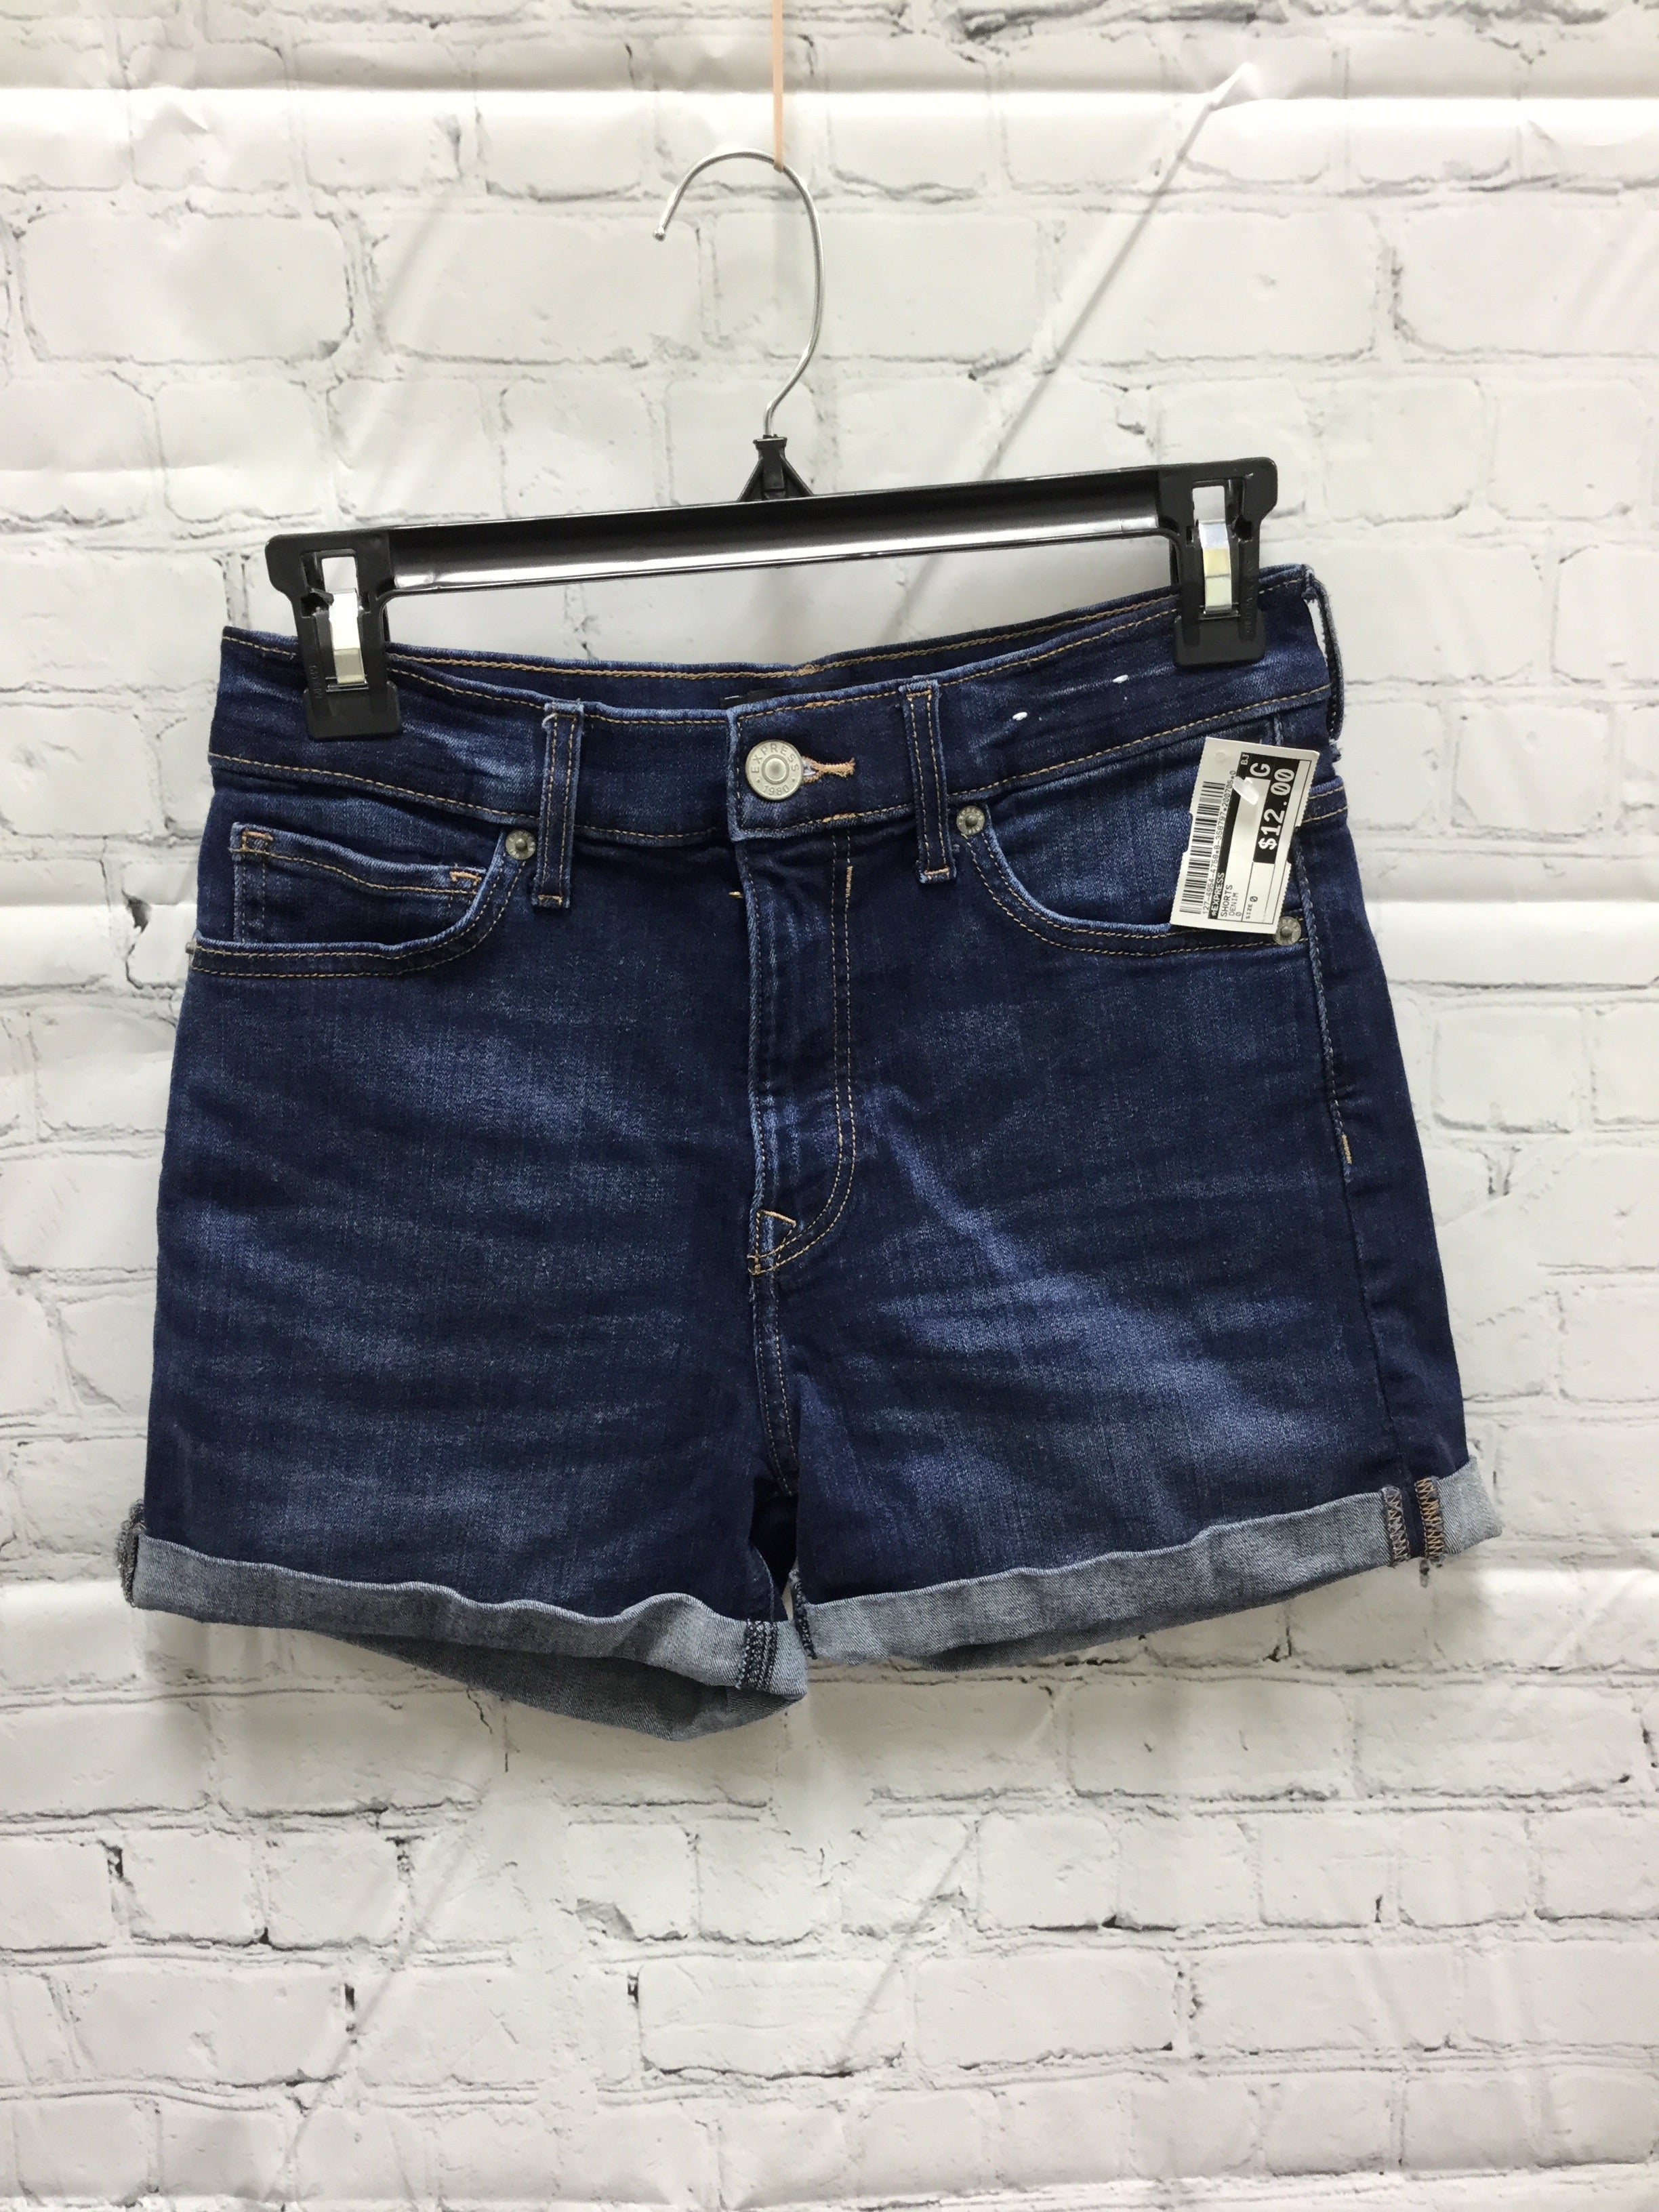 Primary Photo - BRAND: EXPRESS , STYLE: SHORTS , COLOR: DENIM , SIZE: 0 , SKU: 127-4954-4758